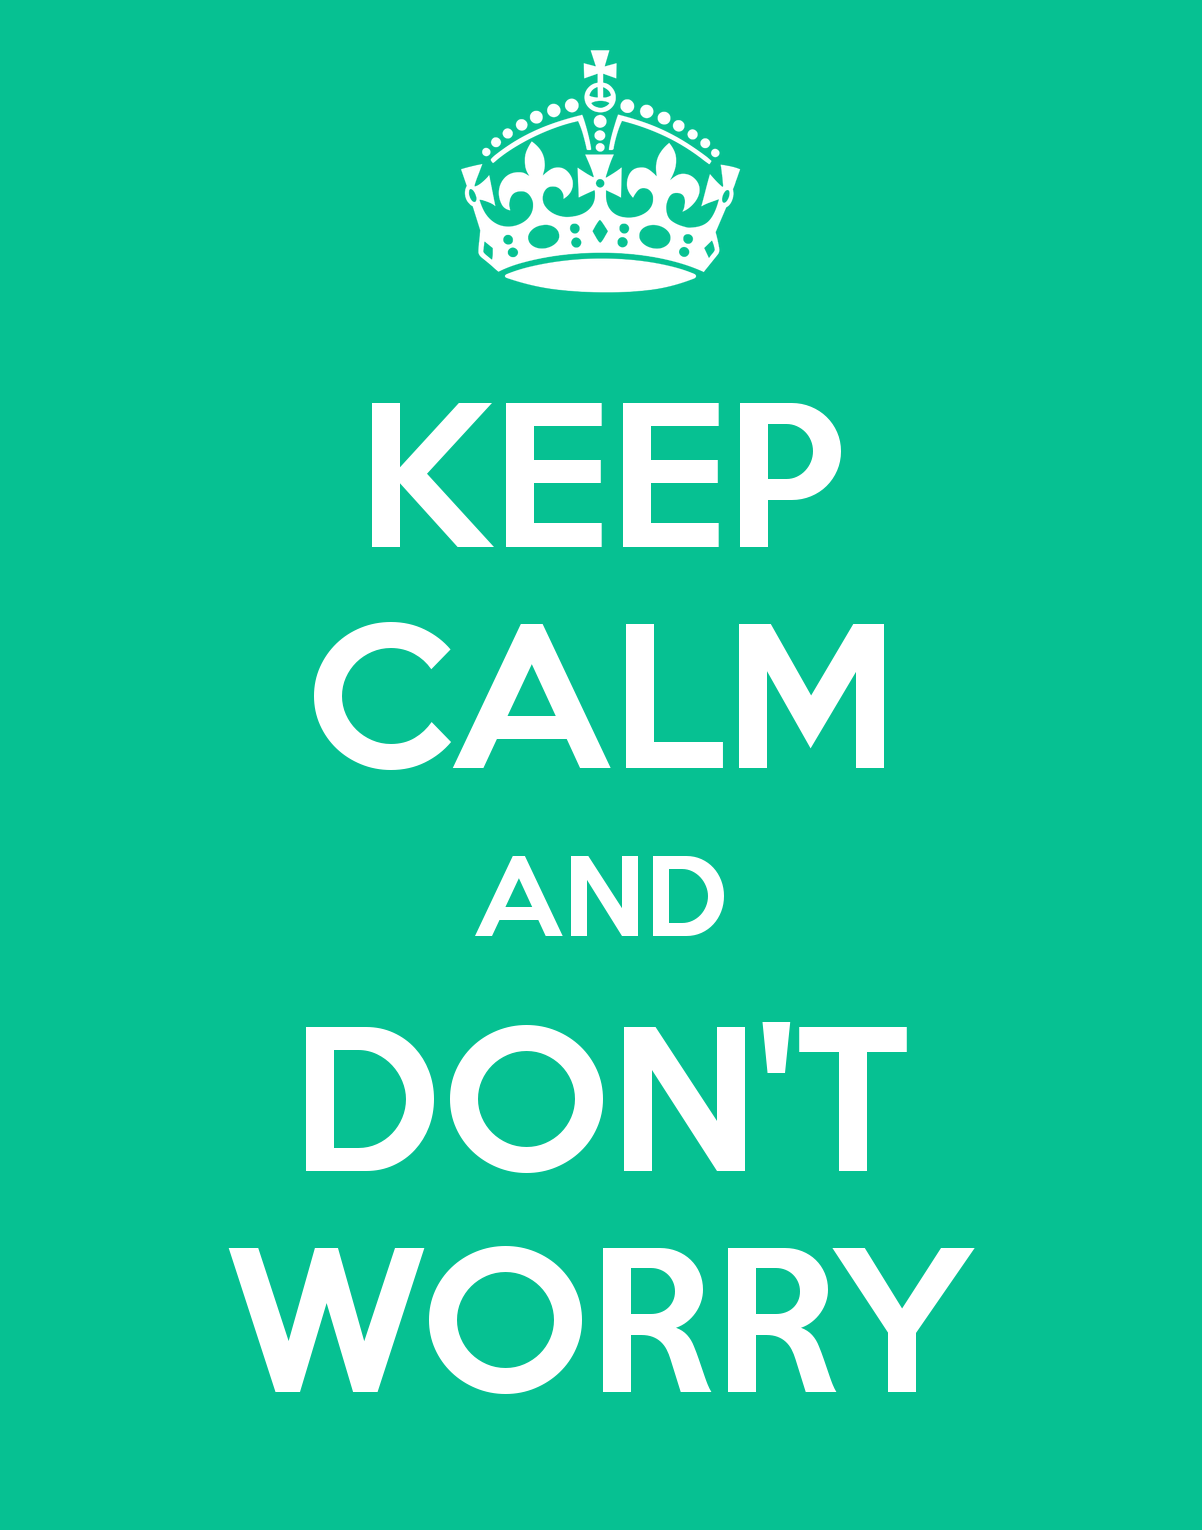 http://2.bp.blogspot.com/-xjf-Ecs43oE/URclVykHmfI/AAAAAAAAAWY/s6SrqLx7QG8/s1600/keep-calm-and-don-t-worry-85.png